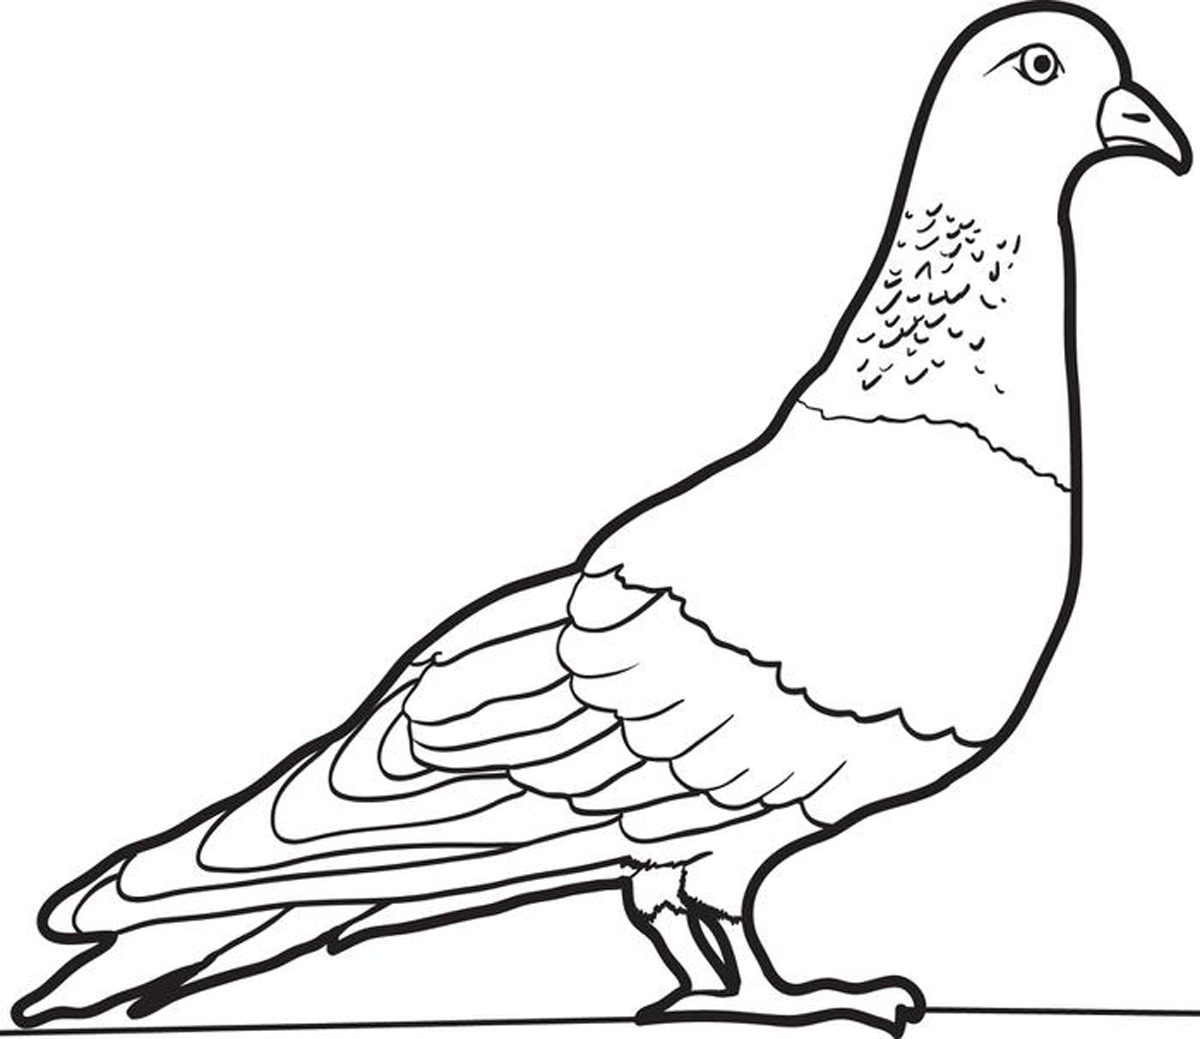 printalbe coloring pages - photo#19